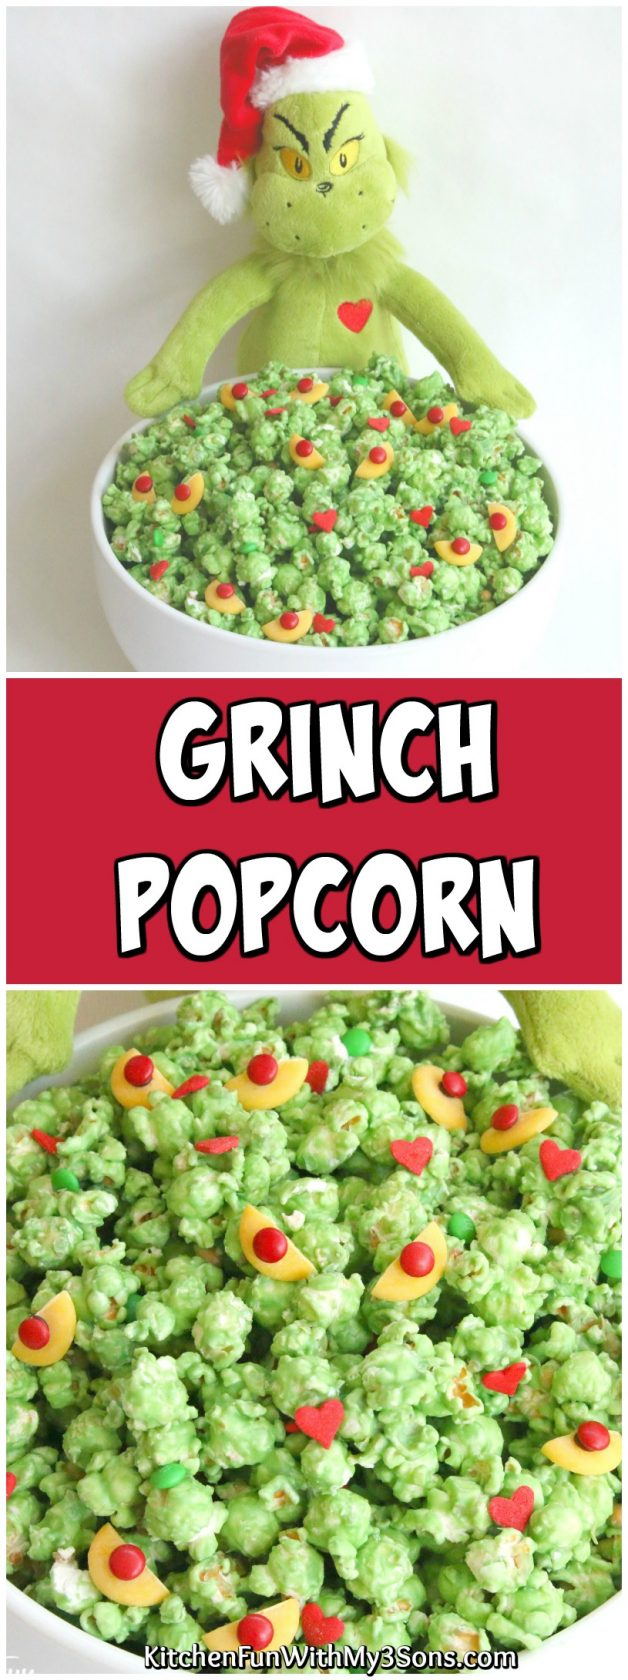 Christmas Popcorn Recipes.Grinch Popcorn Easy Christmas Treat Kitchen Fun With My